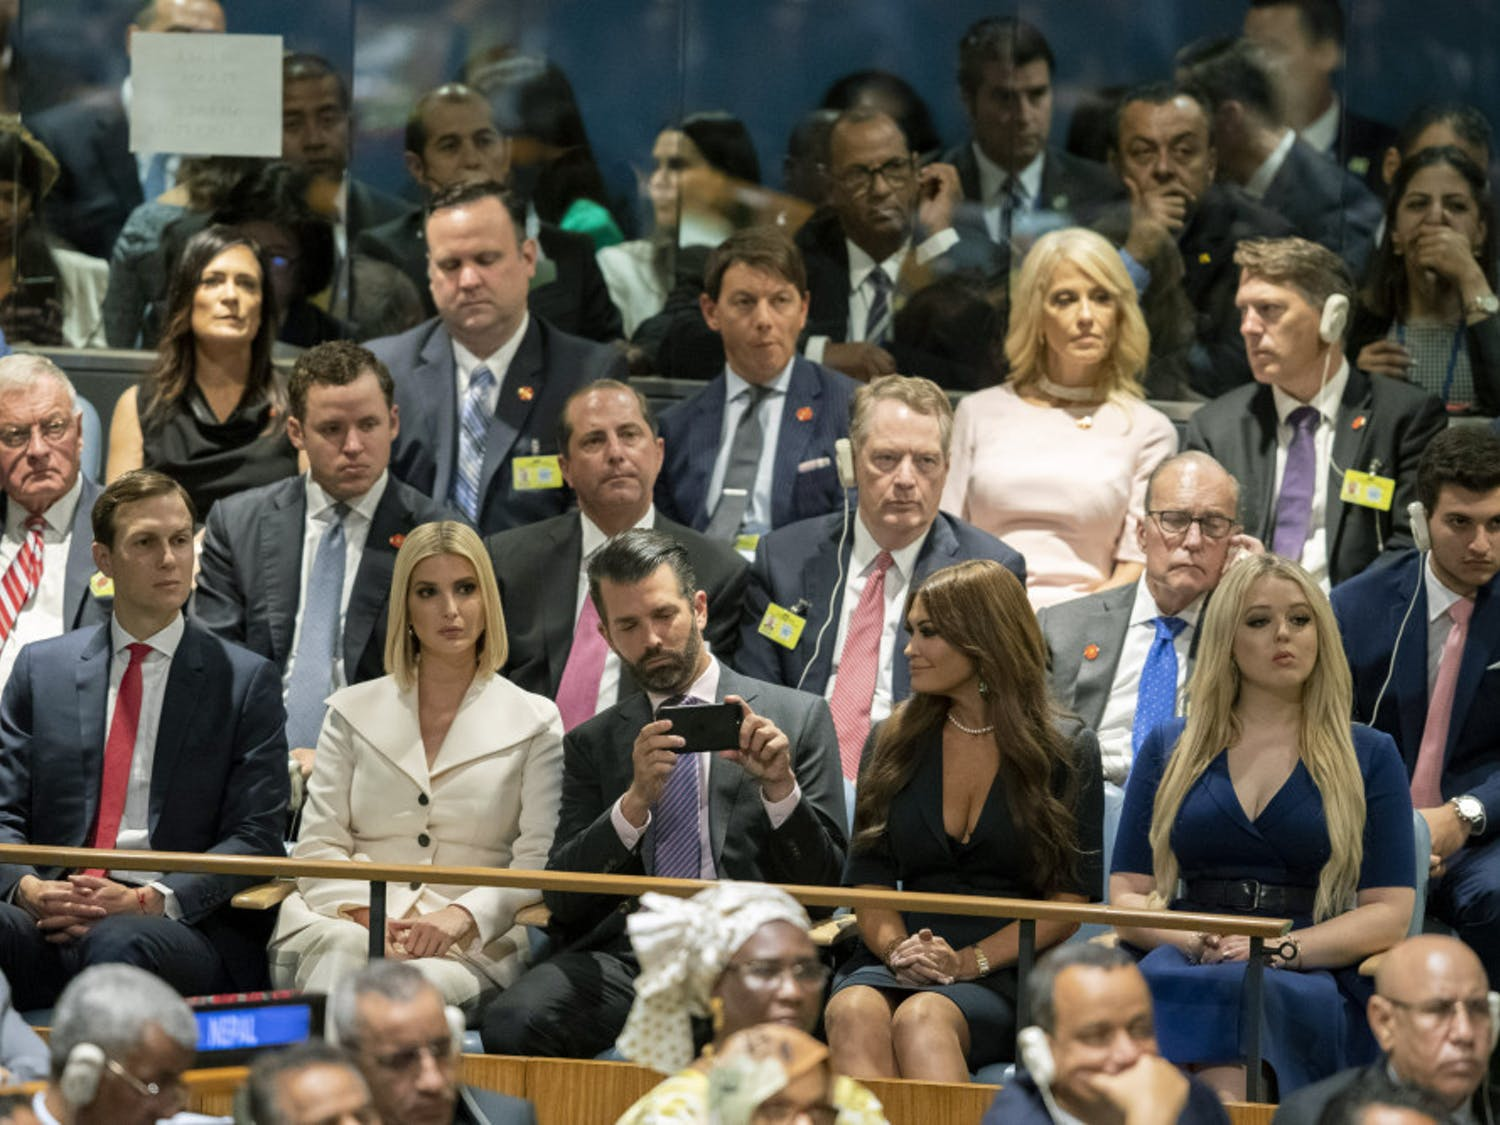 The Trump family, front row, and his staff listen as U.S. President Donald Trump addresses the 74th session of the United Nations General Assembly at U.N. headquarters Tuesday, Sept. 24, 2019. From right to left, Tiffany Trump, Kimberly Guilfoyle, Donald Trump Jr., Ivanka Trump, and Jared Kushner. (AP Photo/Mary Altaffer)